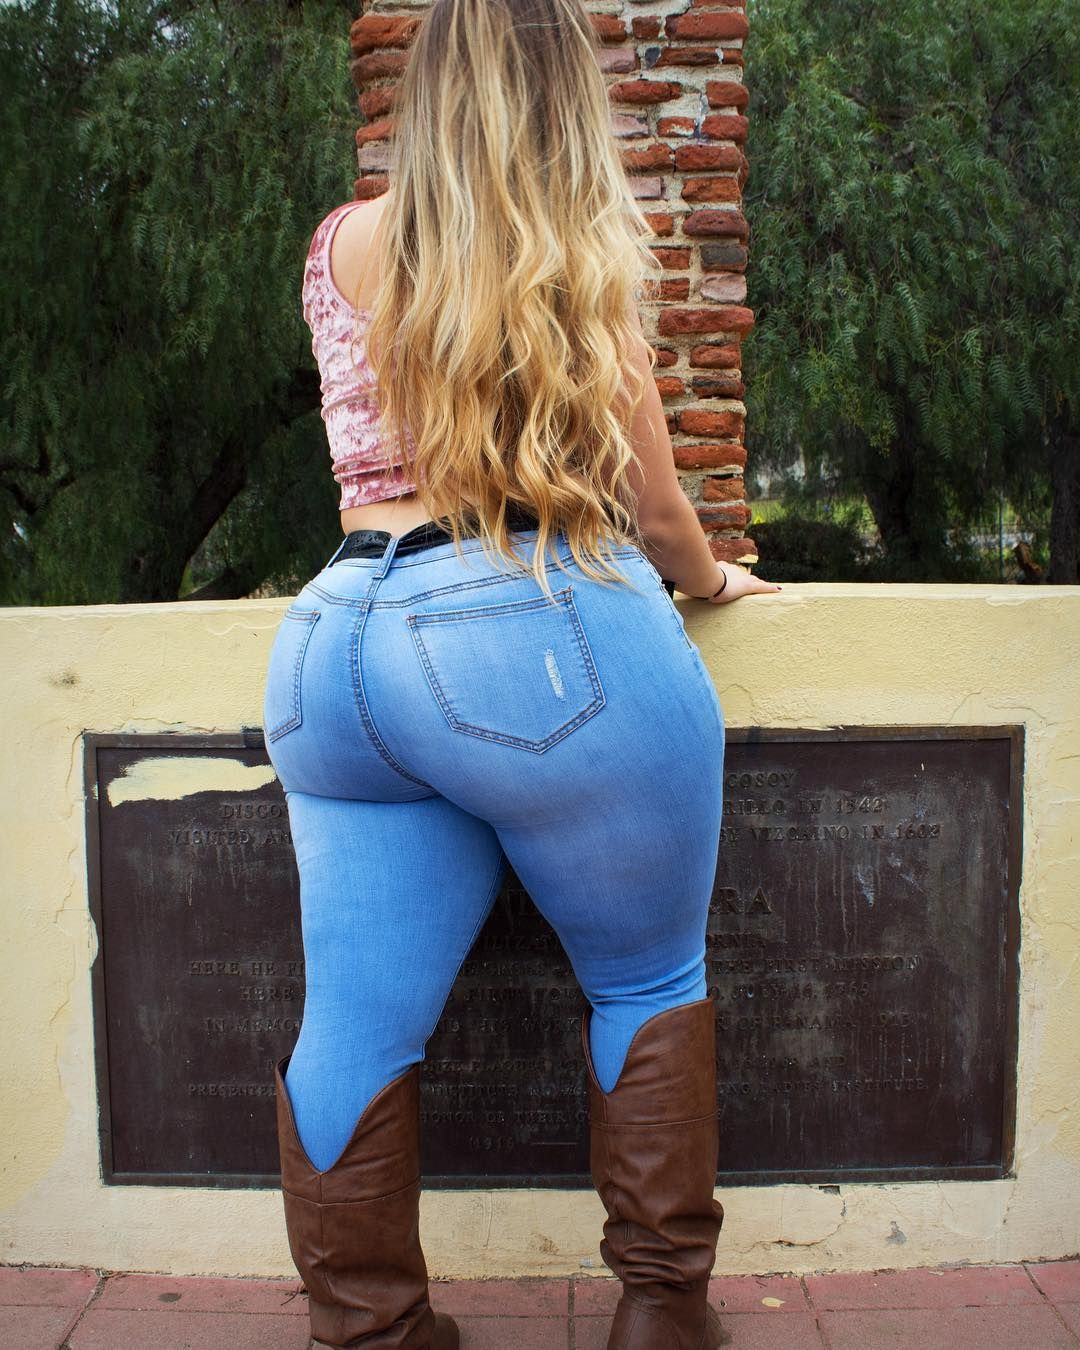 Blonde milf pawg in jeans